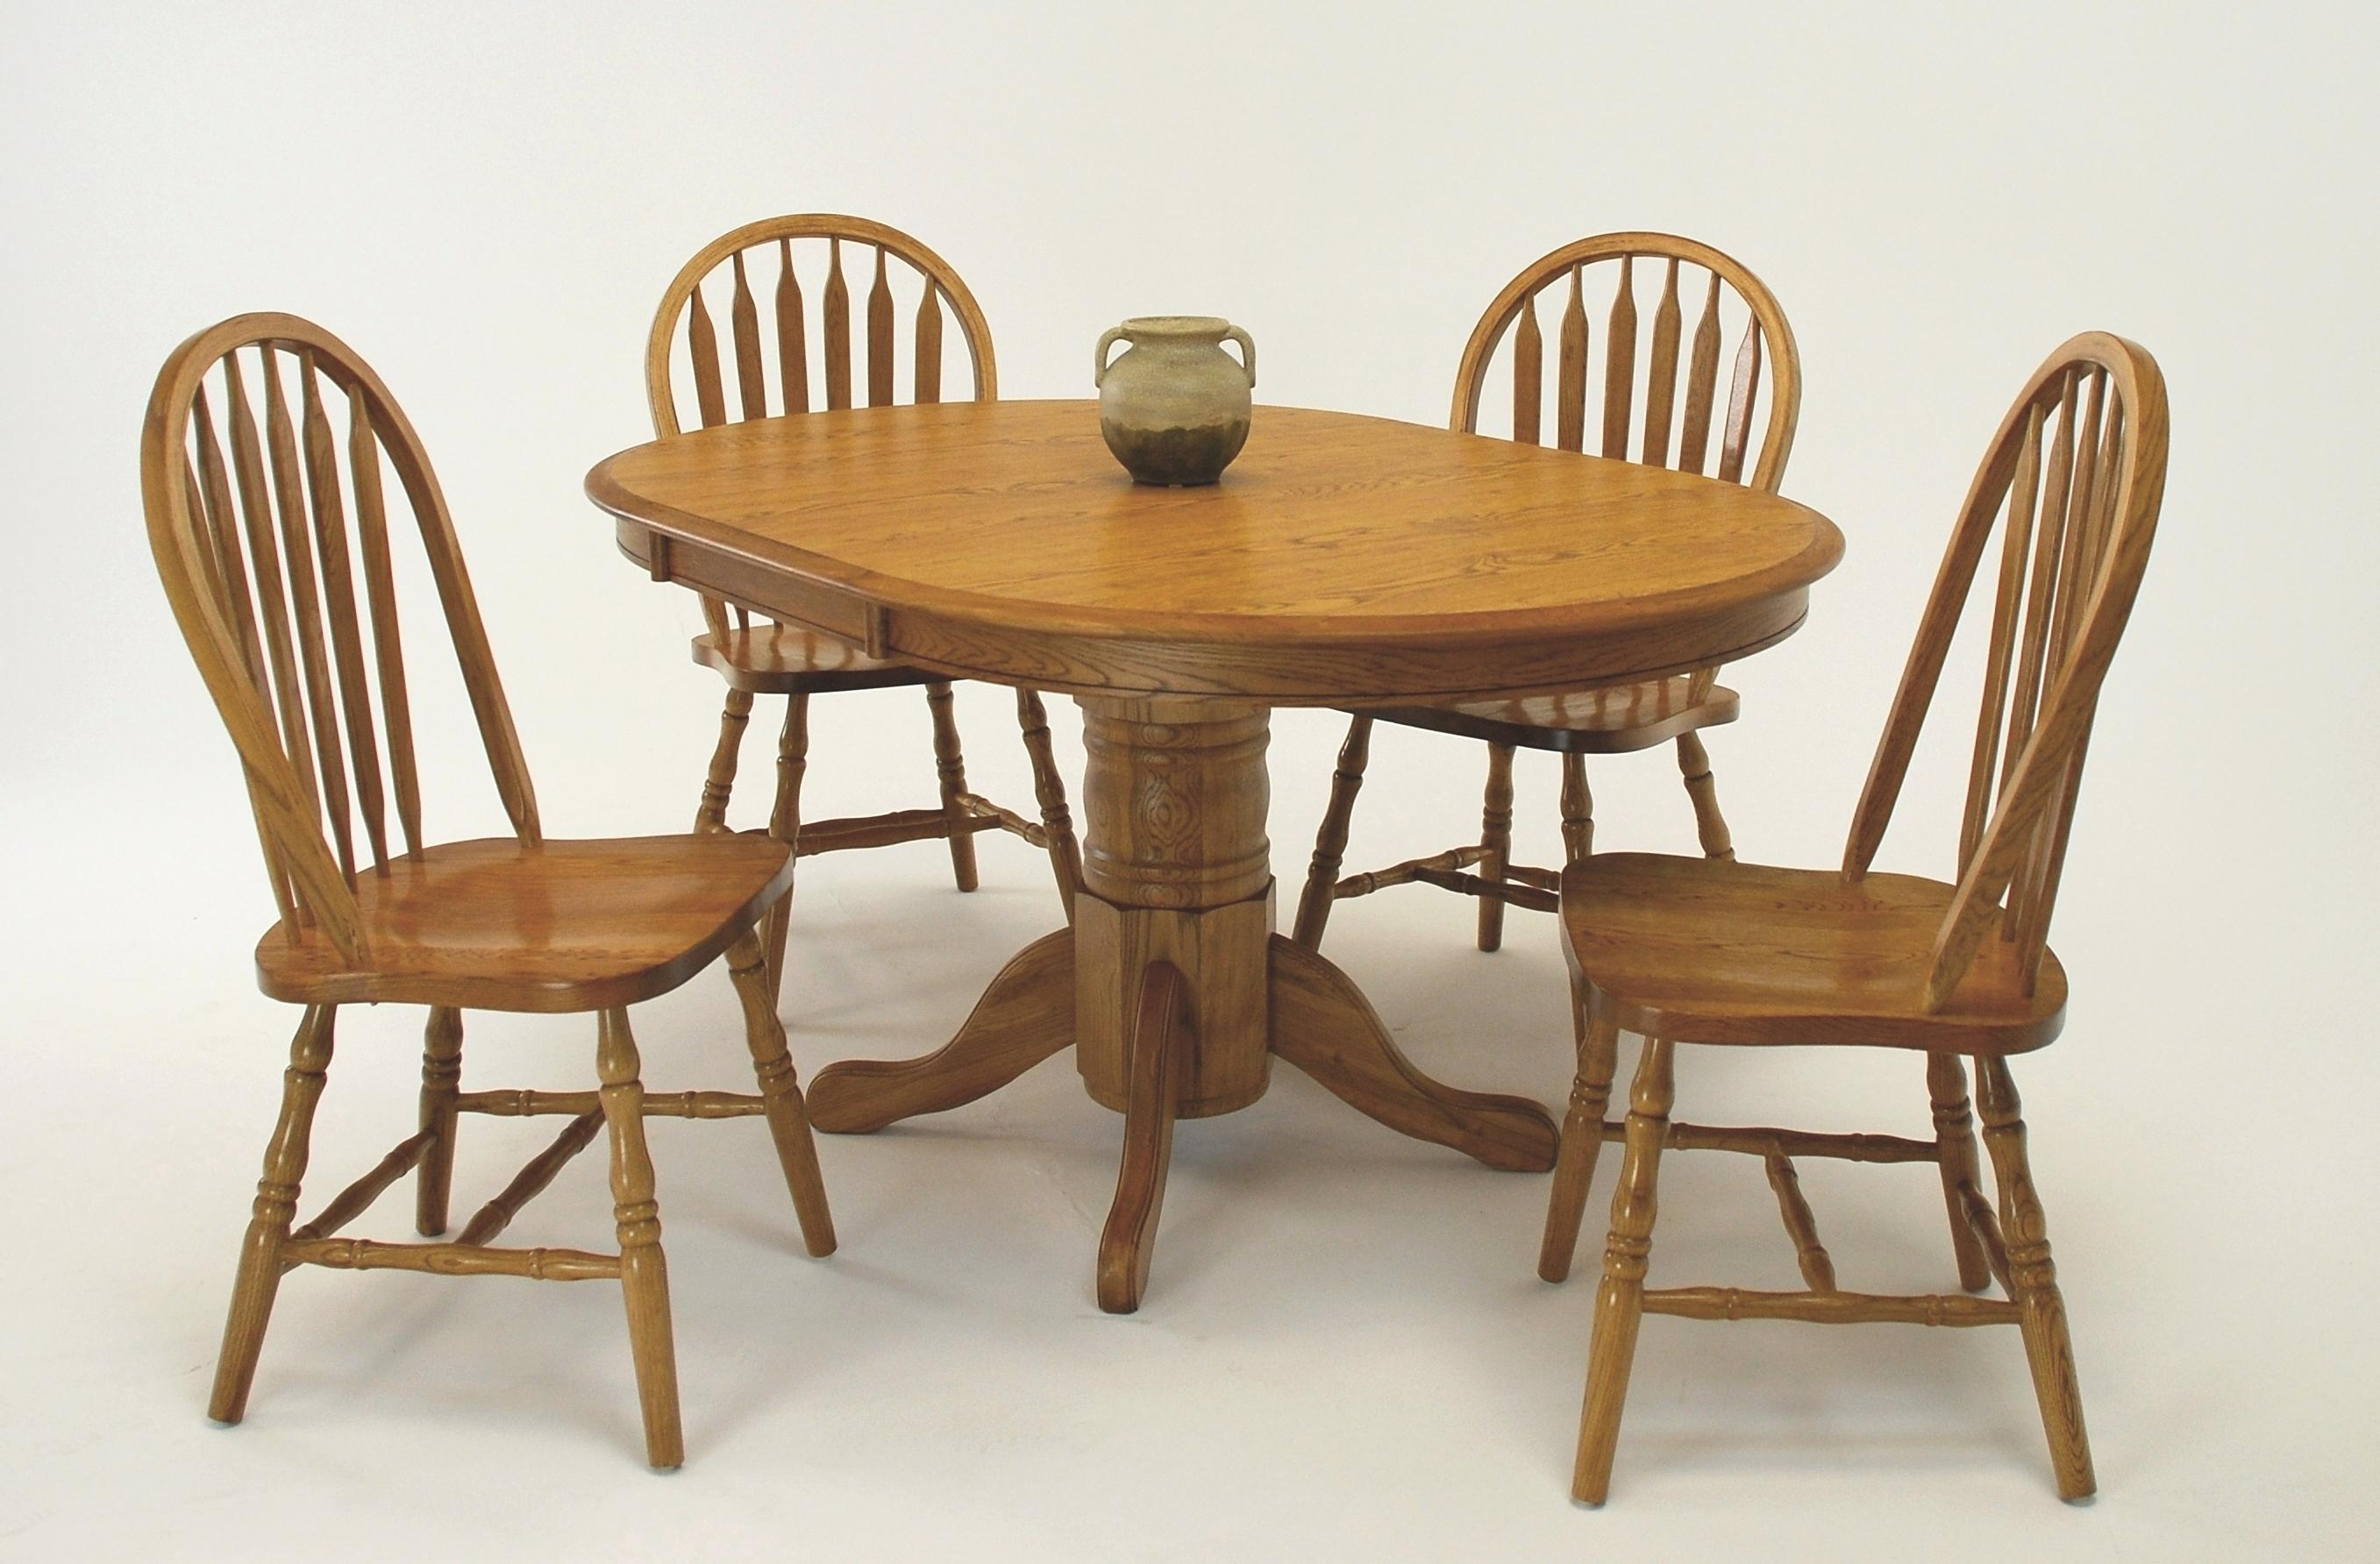 5-Piece Oval Table & Side Chair Set